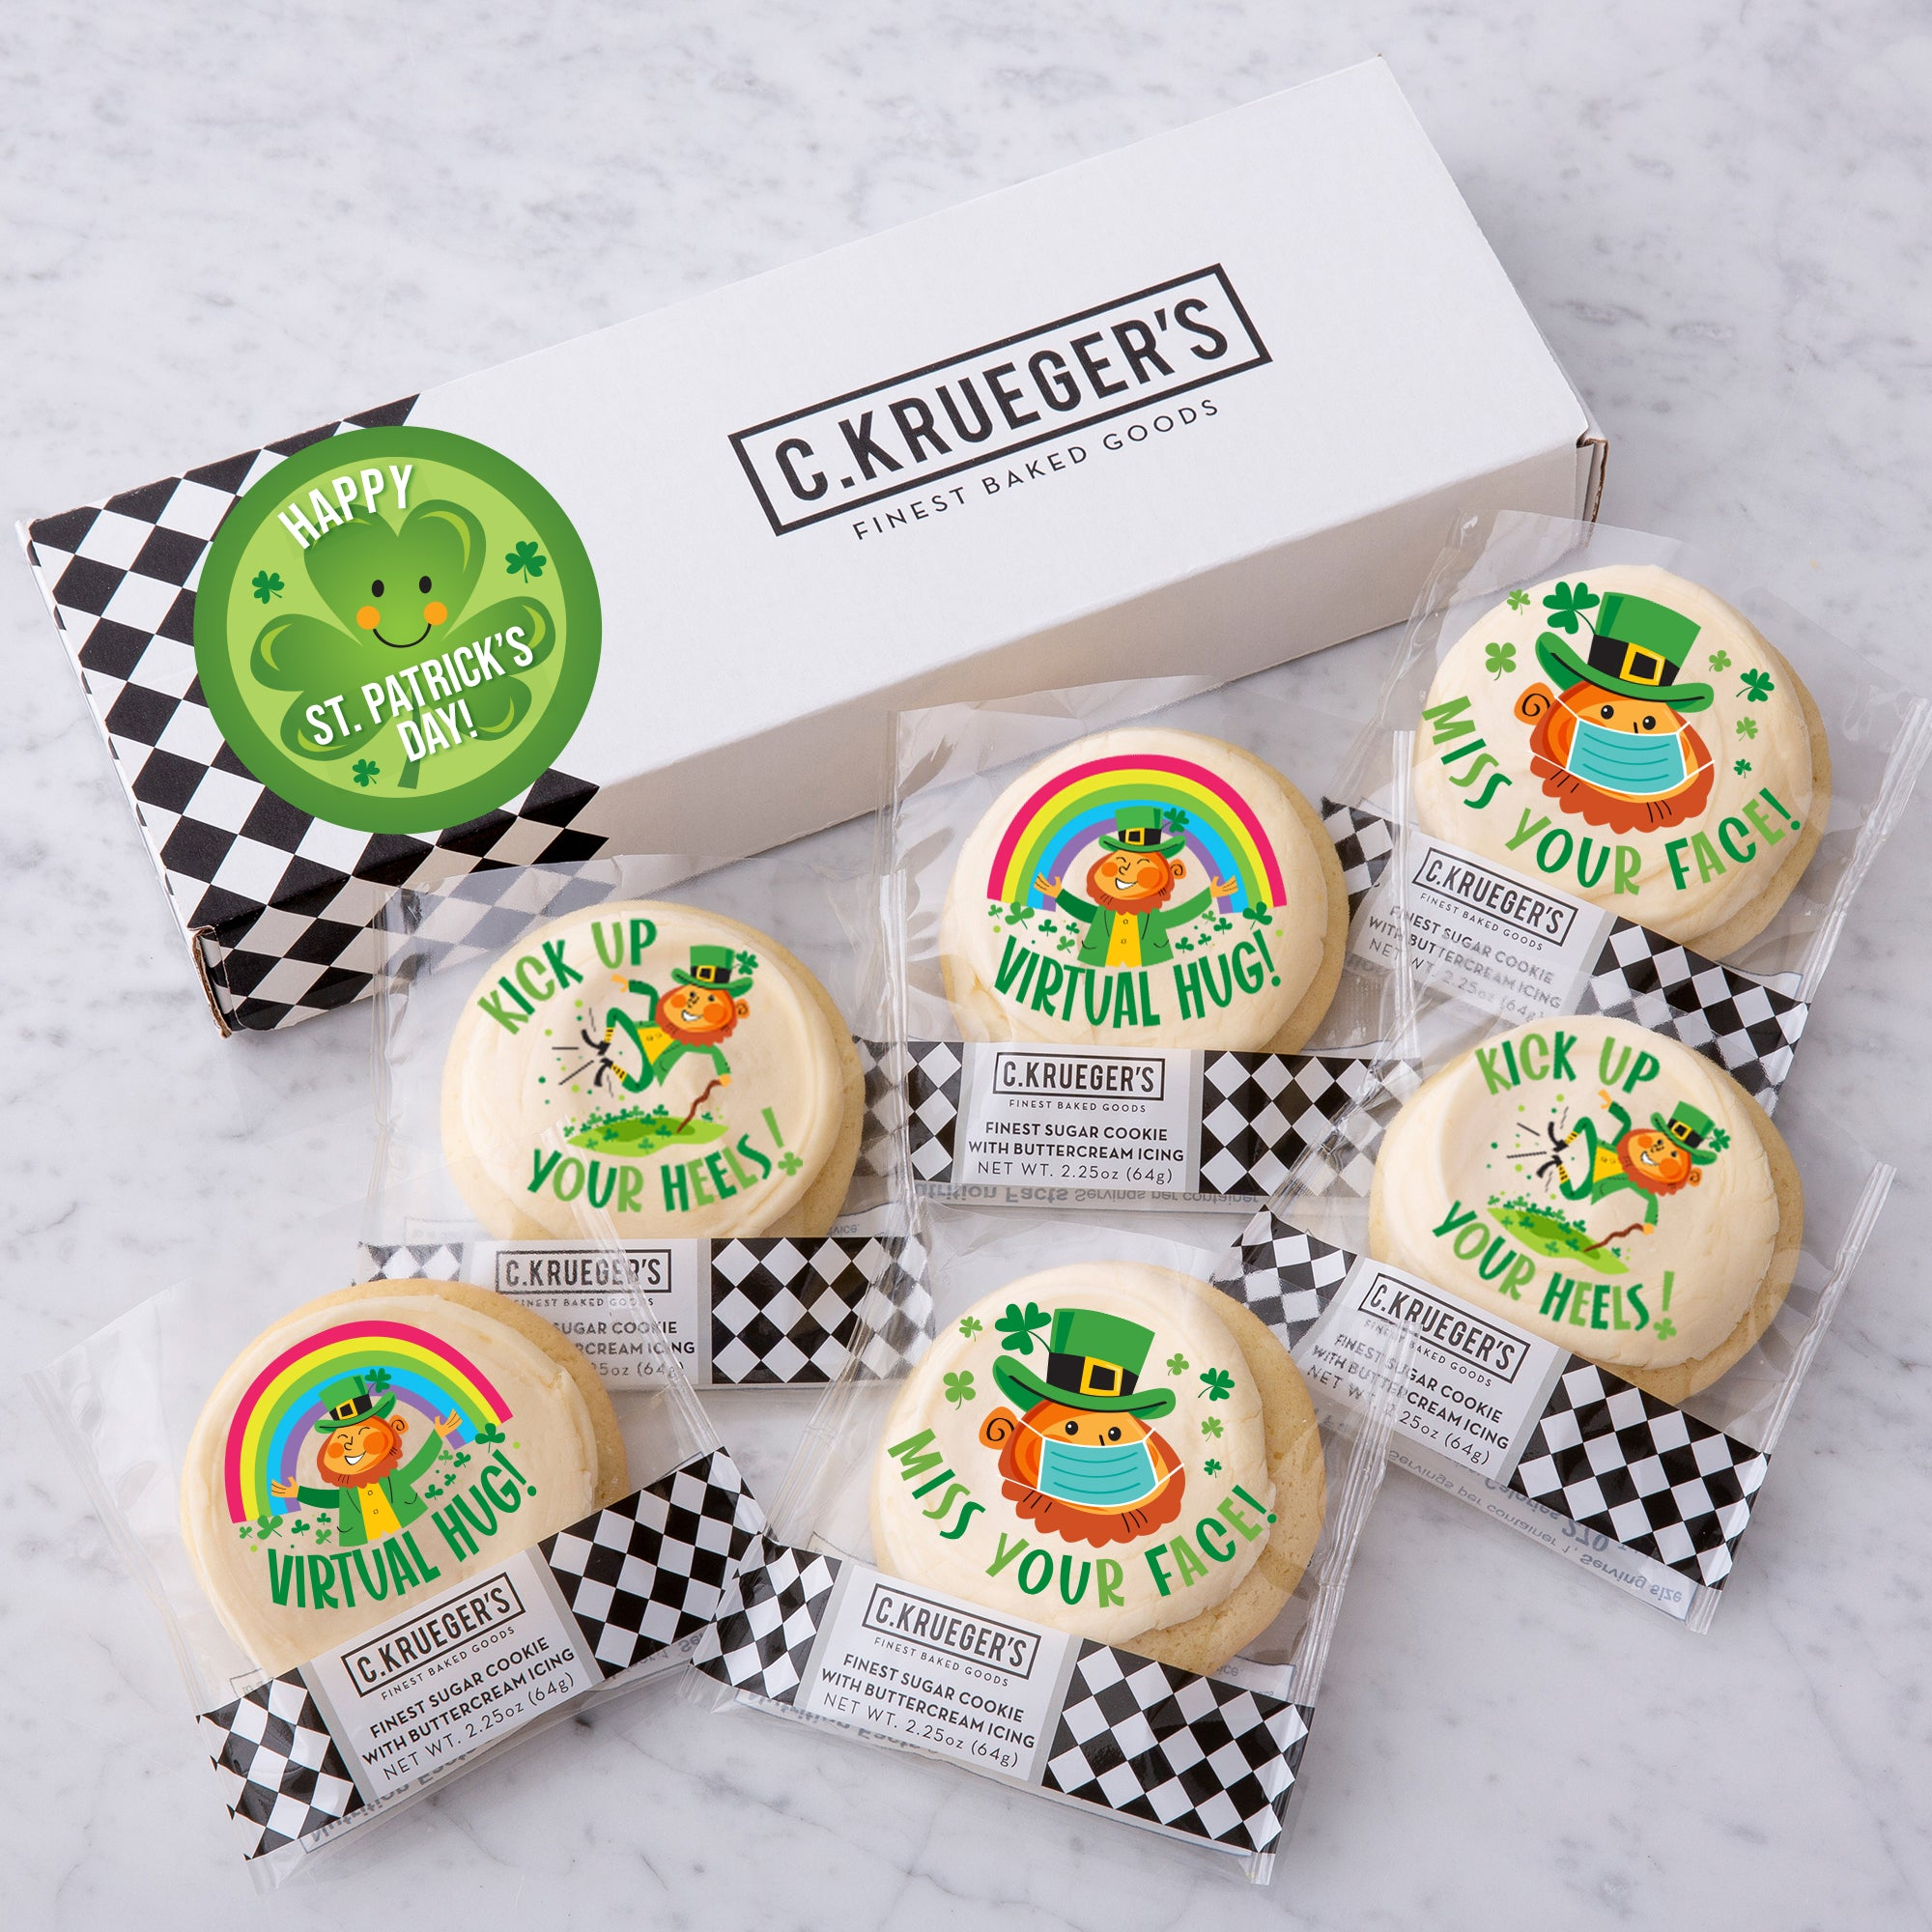 Half Dozen Sampler - St. Patrick's 2021 Iced Messages